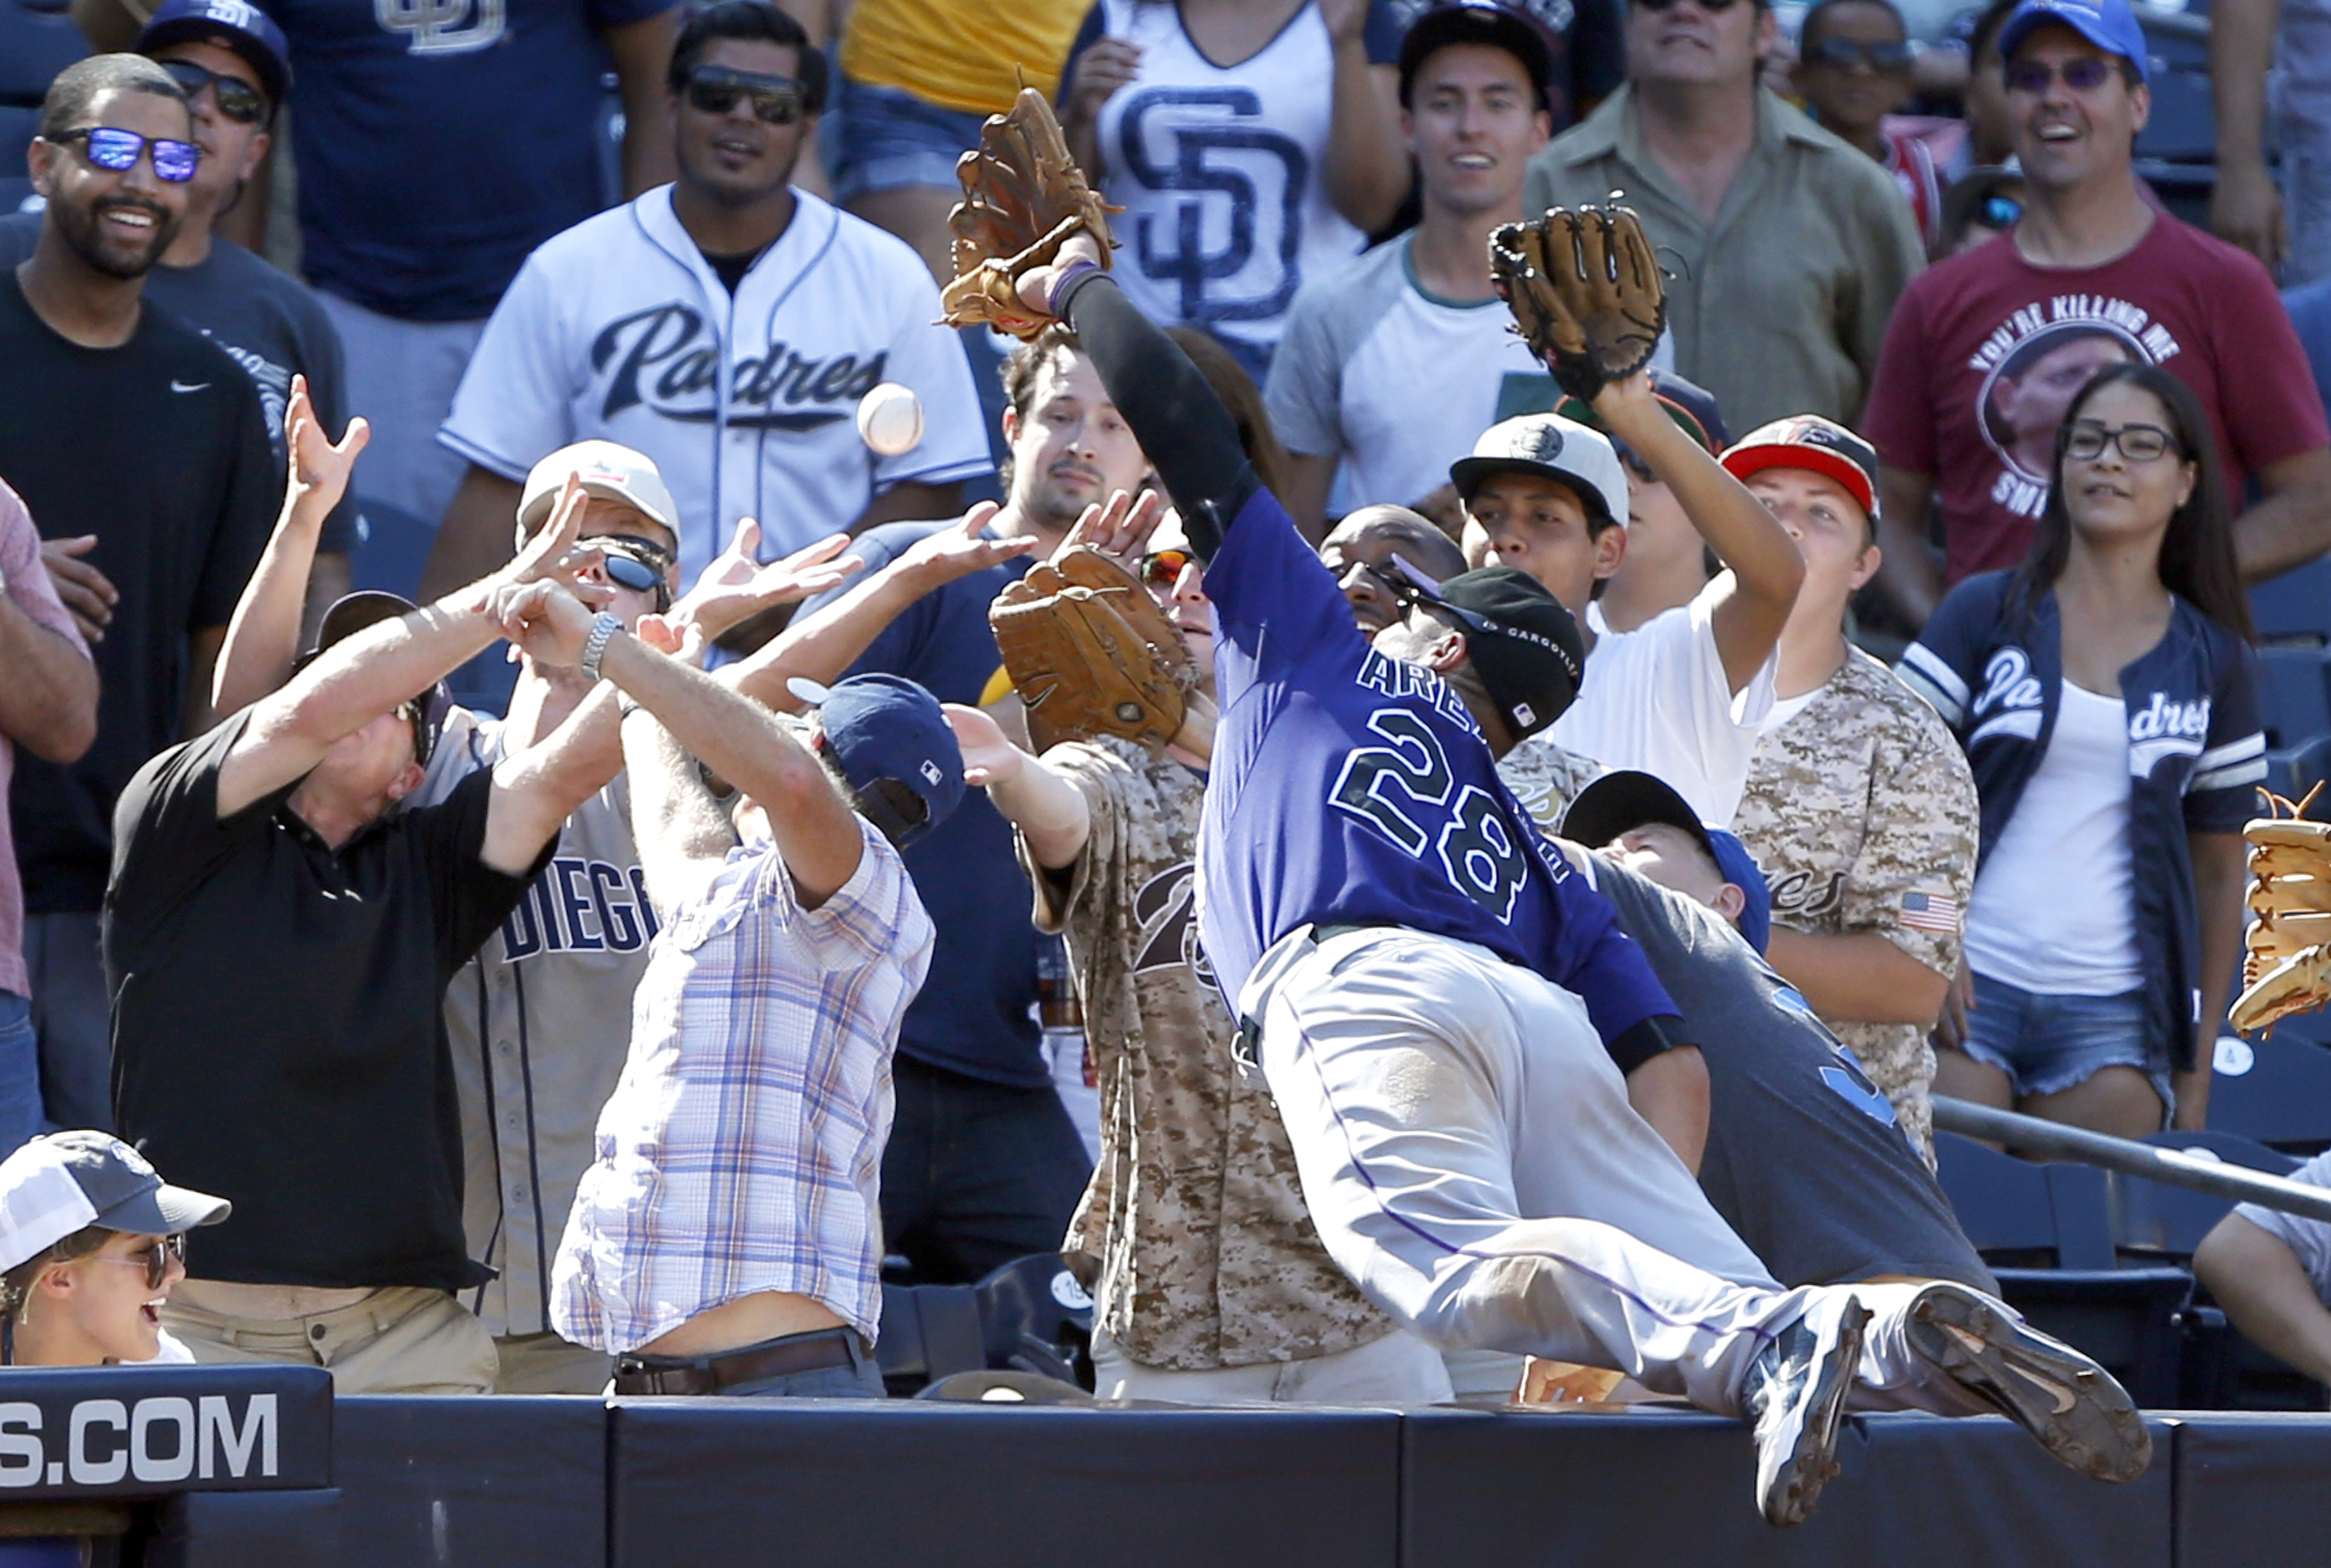 Colorado Rockies third baseman Nolan Arenado (28) leaps into the stands but cannot reach a foul ball hit by San Diego Padres' Wil Myers during the sixth inning of a baseball game in San Diego, Calif., Monday, Sept. 7, 2015. Myers would later strike out, w